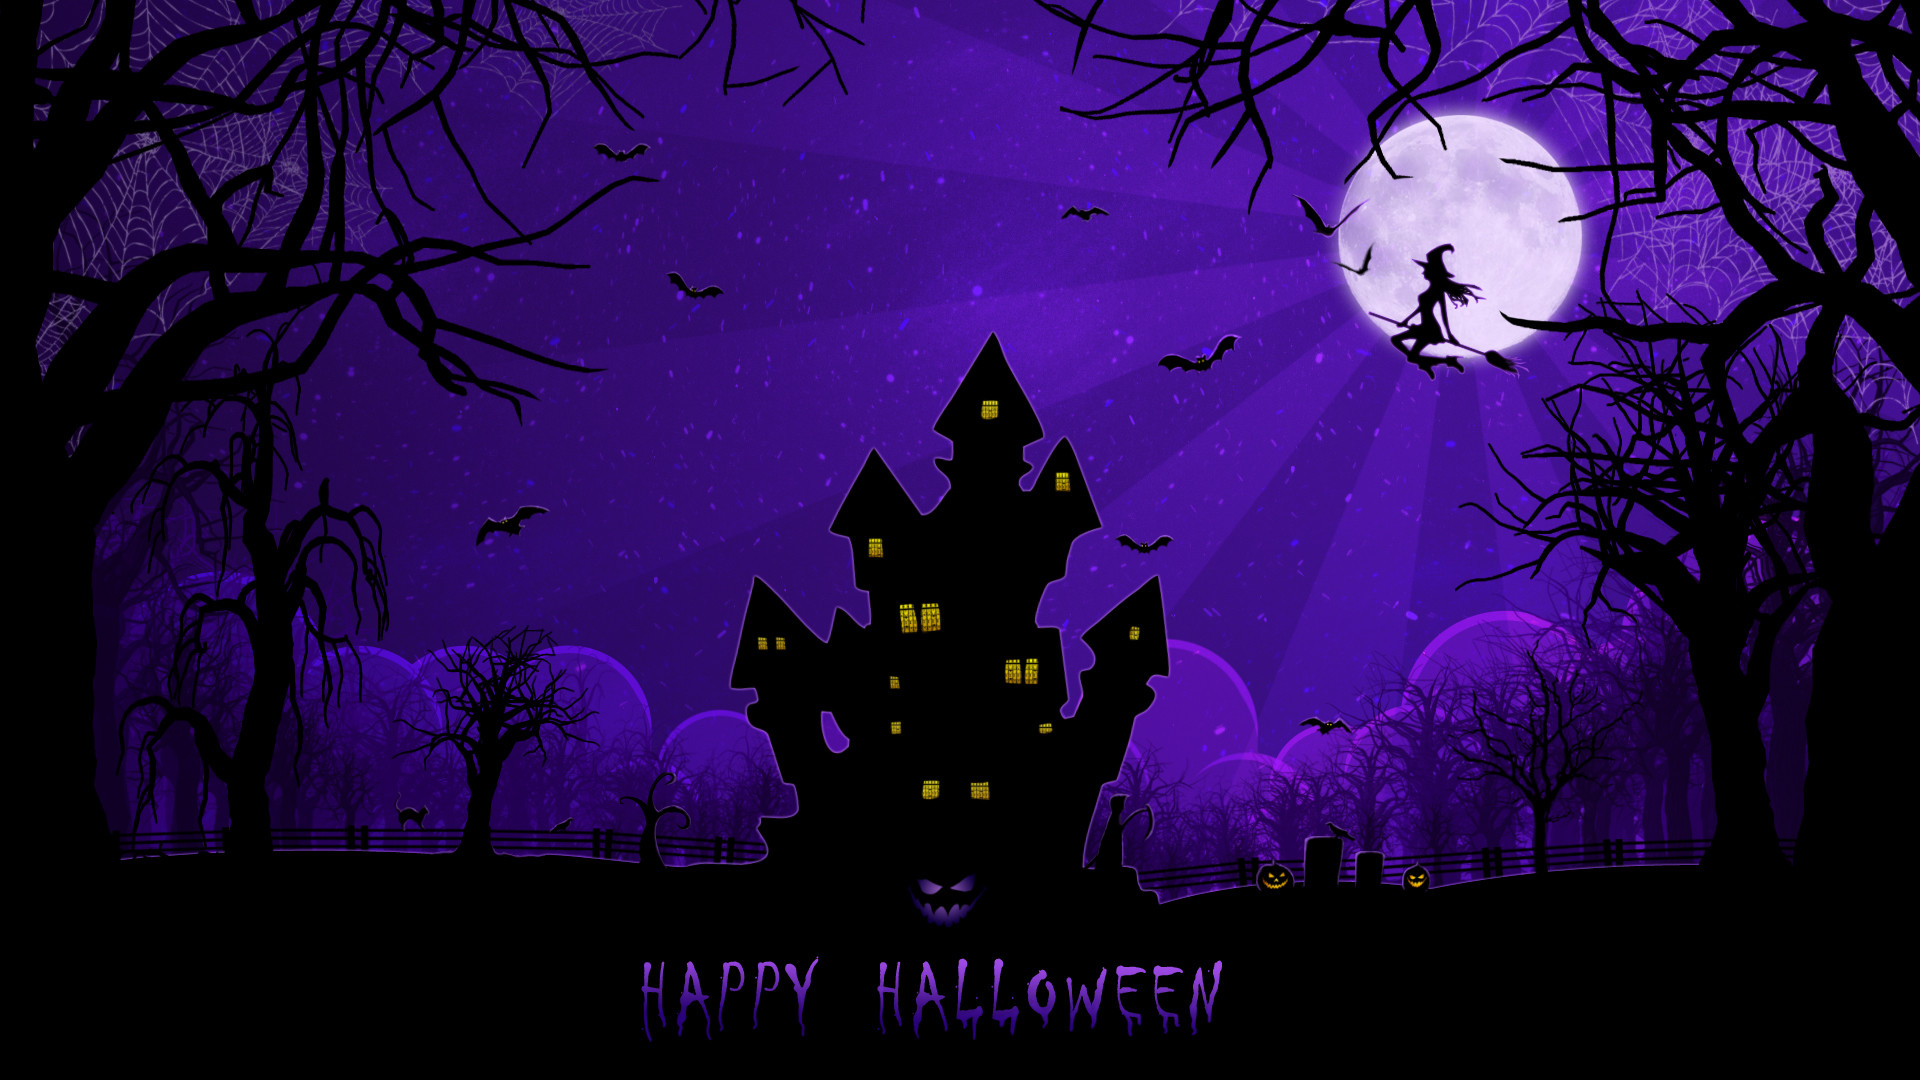 1920x1080 Scary Halloween Backgrounds HD.